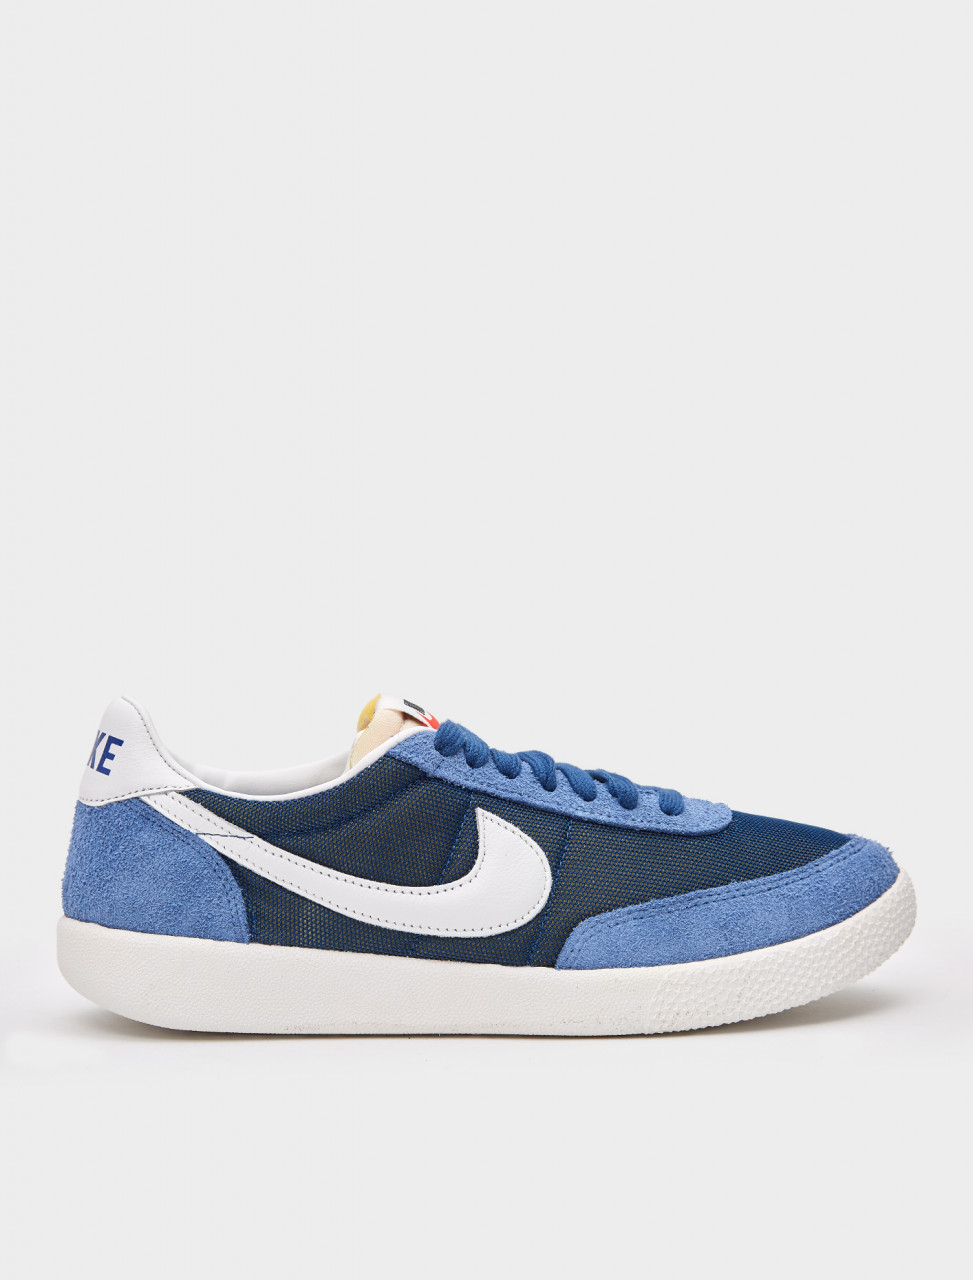 149-DC1982-400 NIKE KILLSHOT SP COASTAL BLUE WHITE STONE BLUE